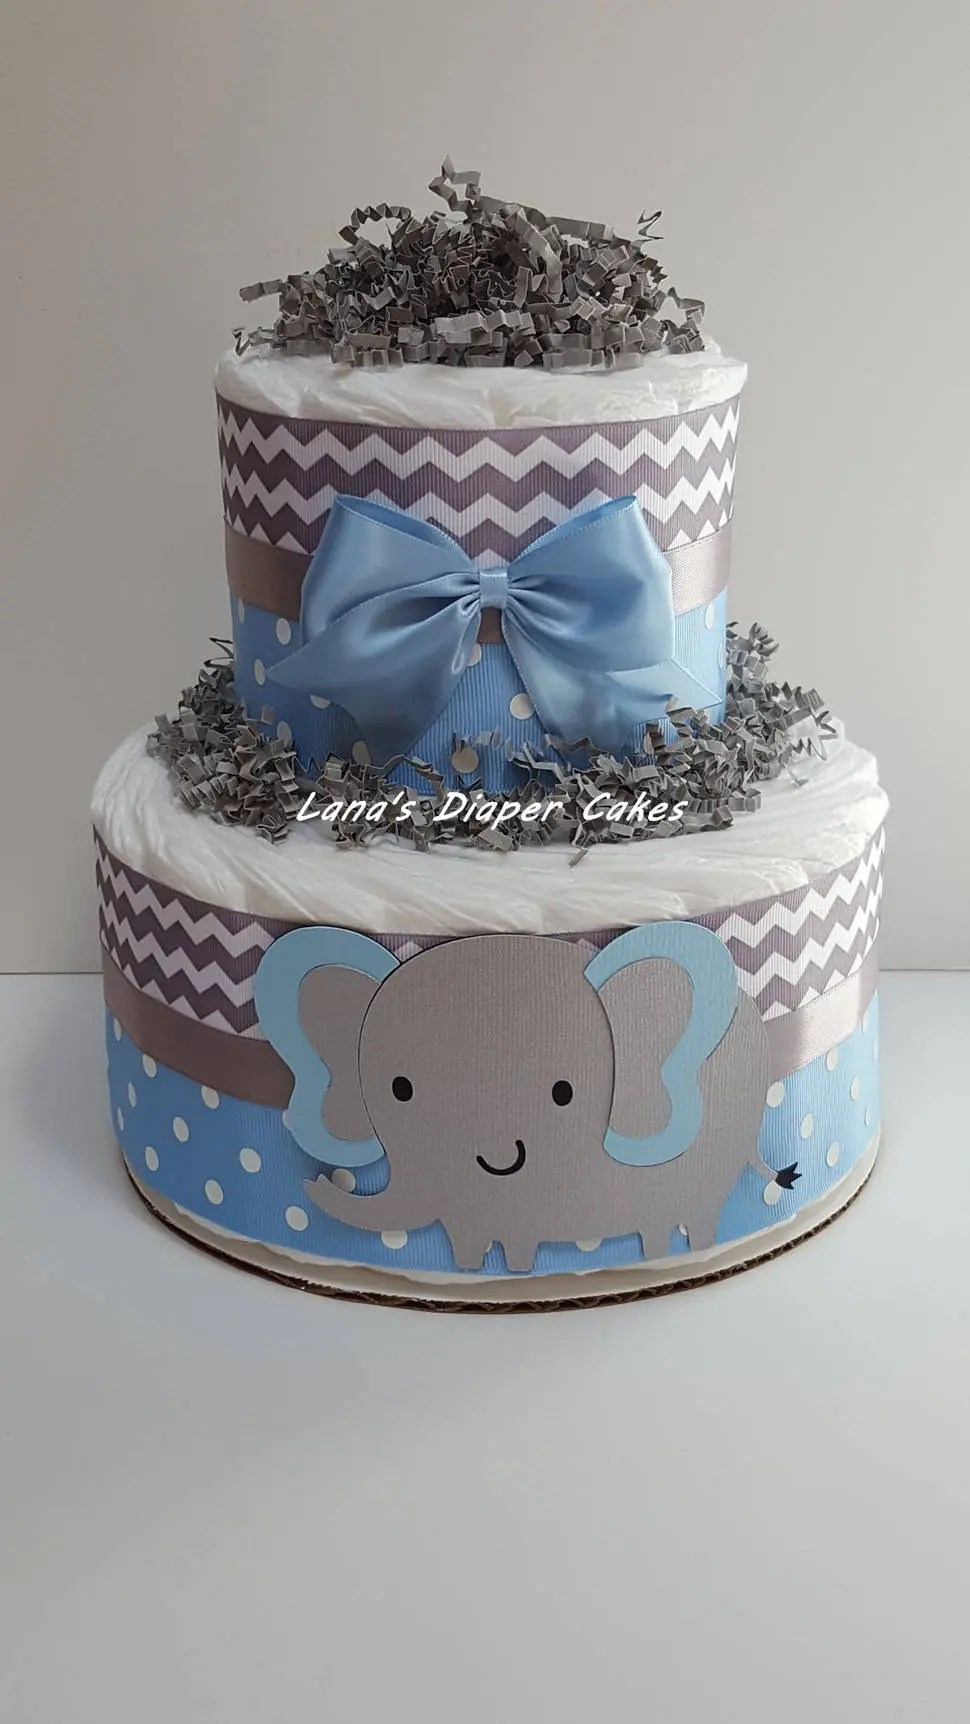 Baby Select Diapers 2 Tier Blue Gray Elephant Diaper Cake Baby Shower